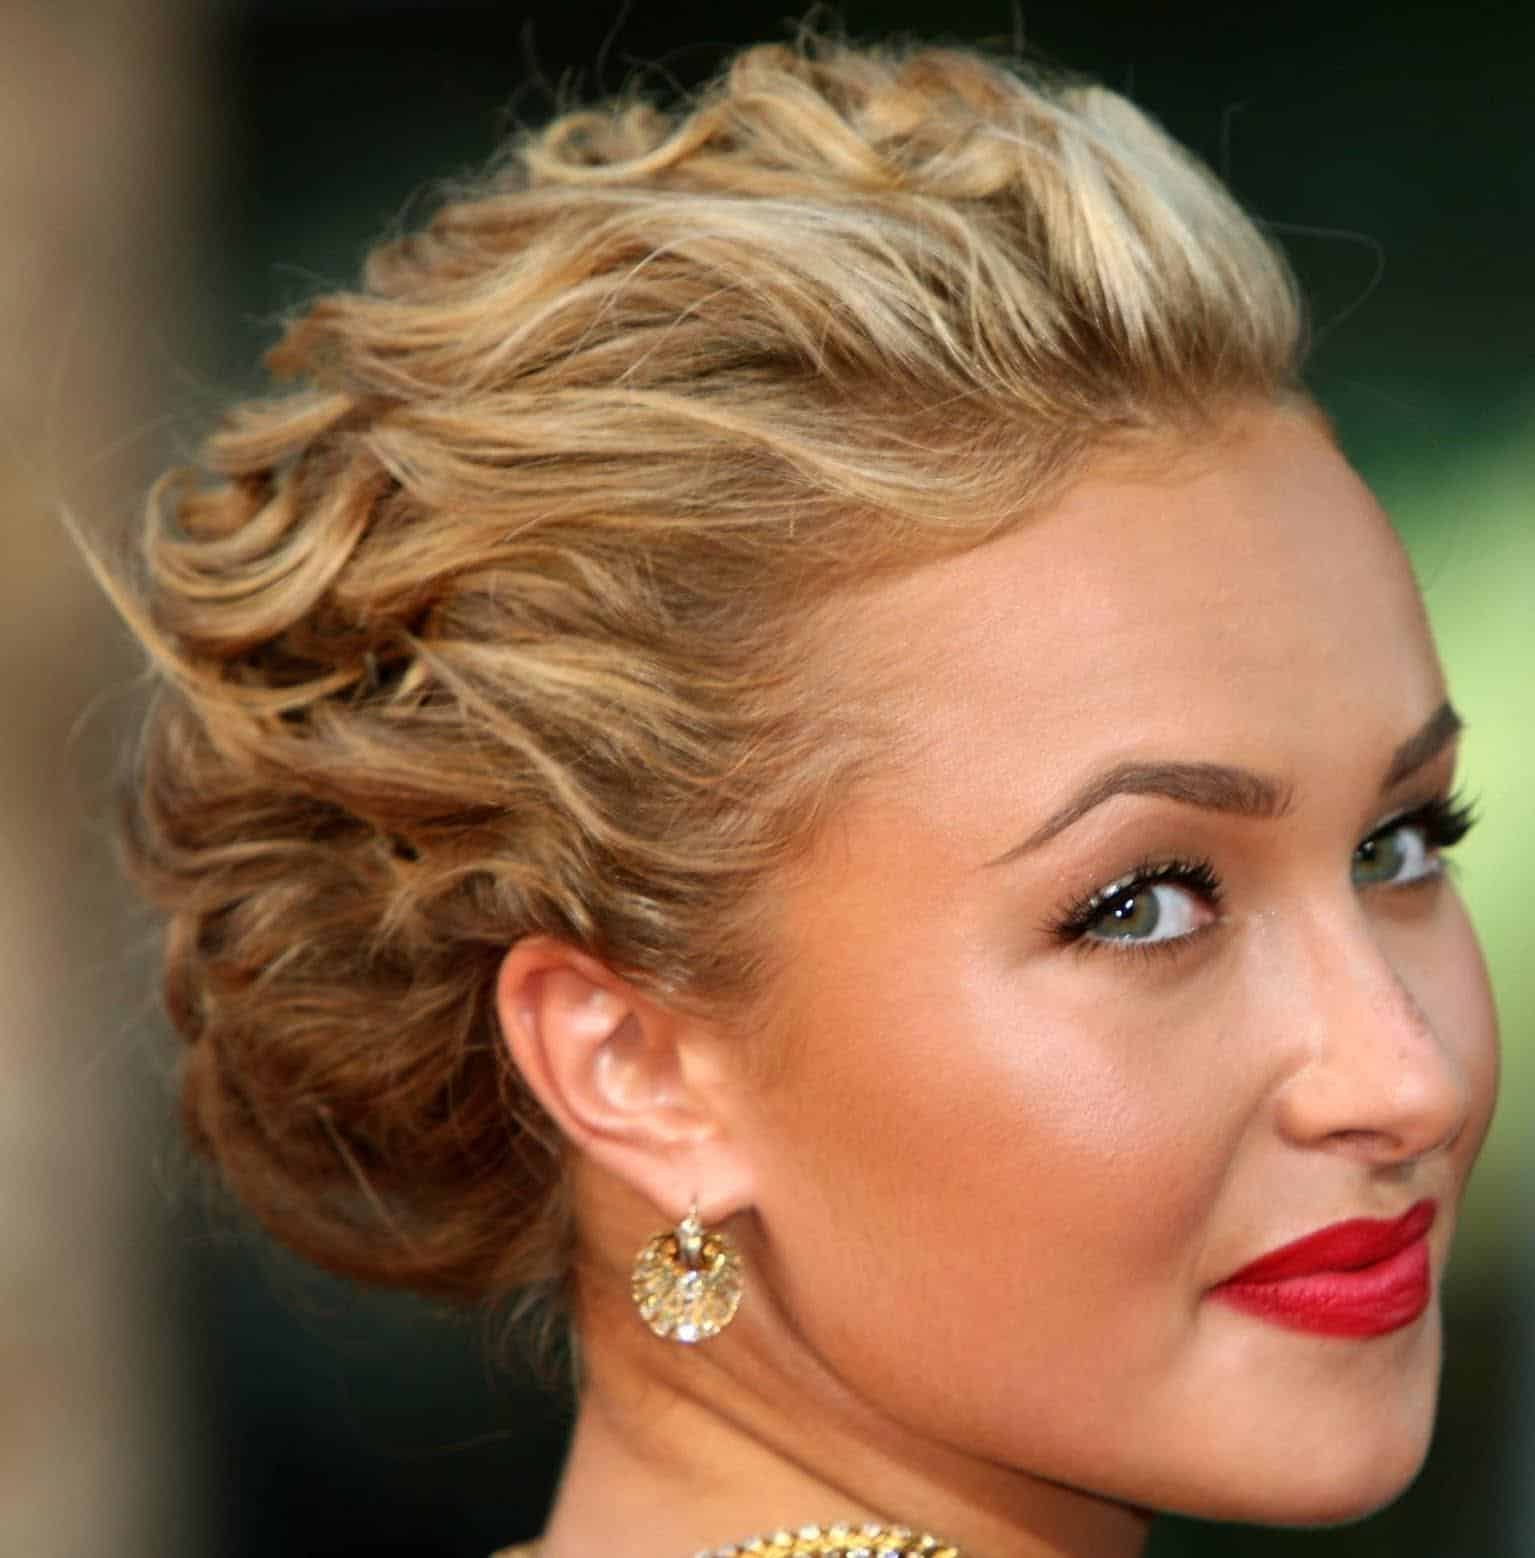 Stupendous Hairstyles For New Years Eve What Look Should We Go For Short Hairstyles Gunalazisus